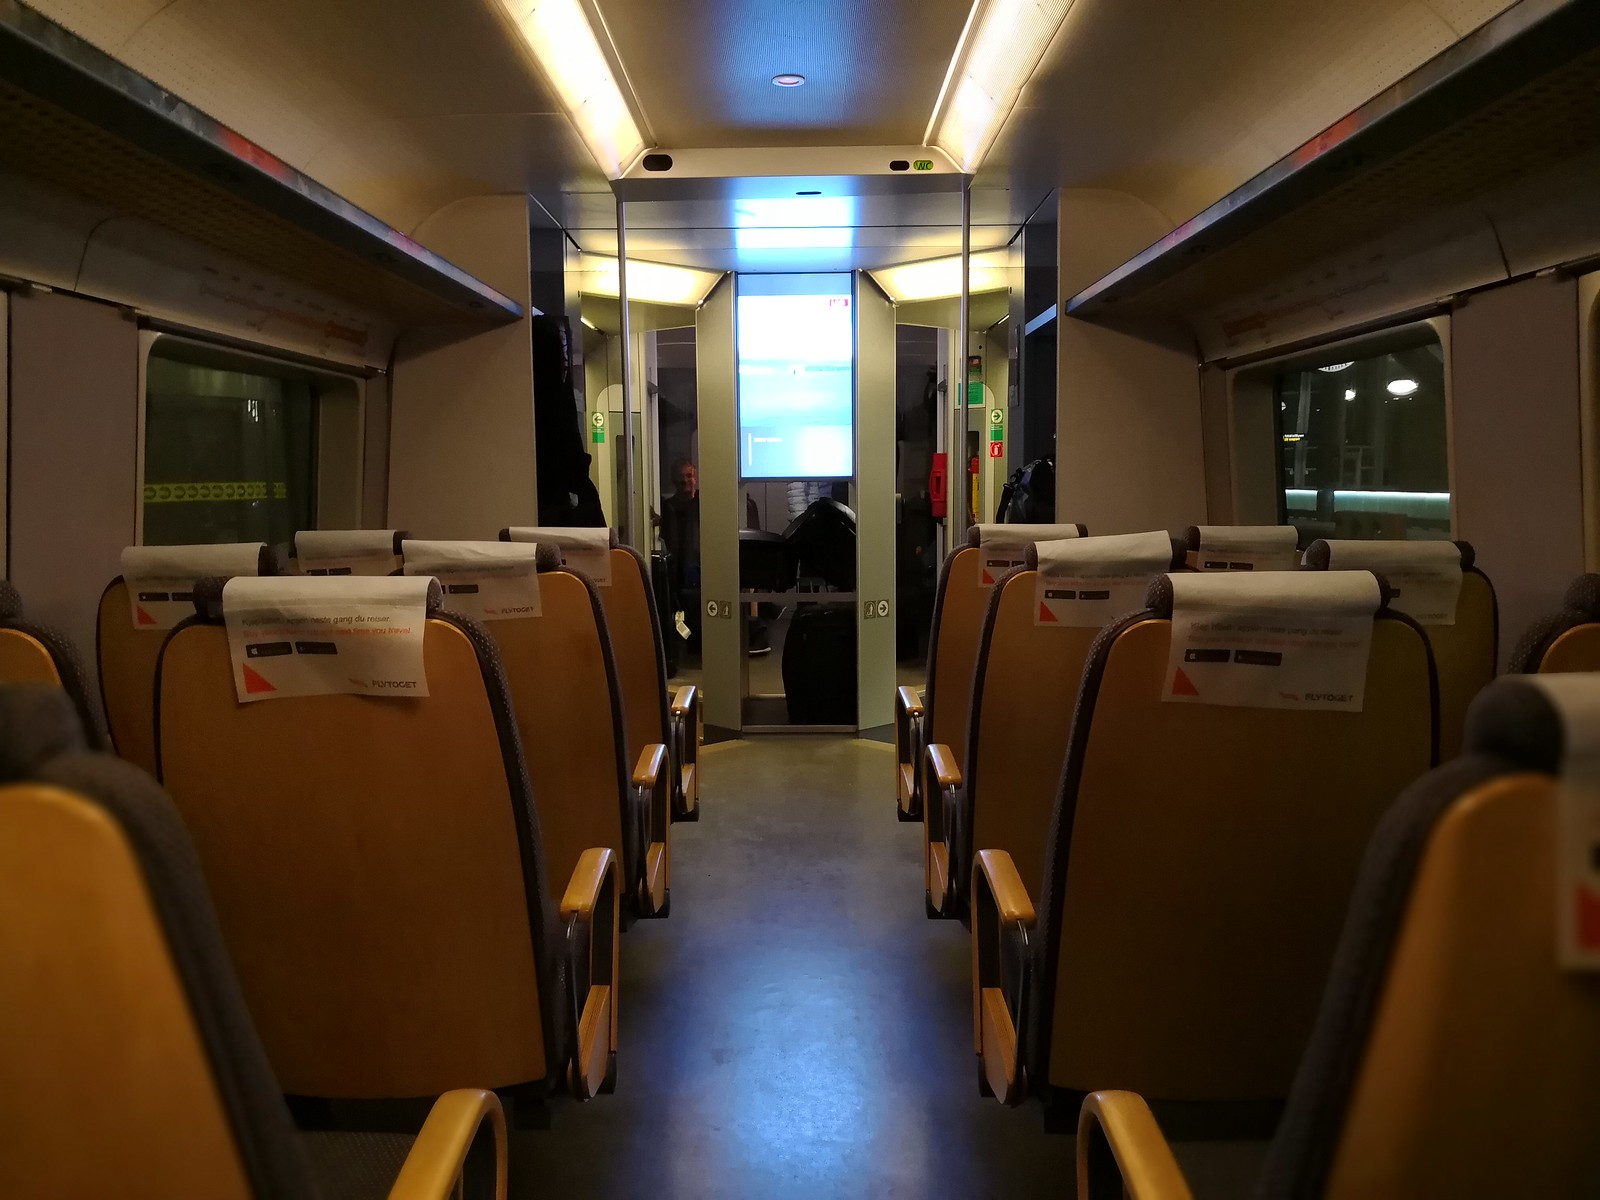 Carriage seating